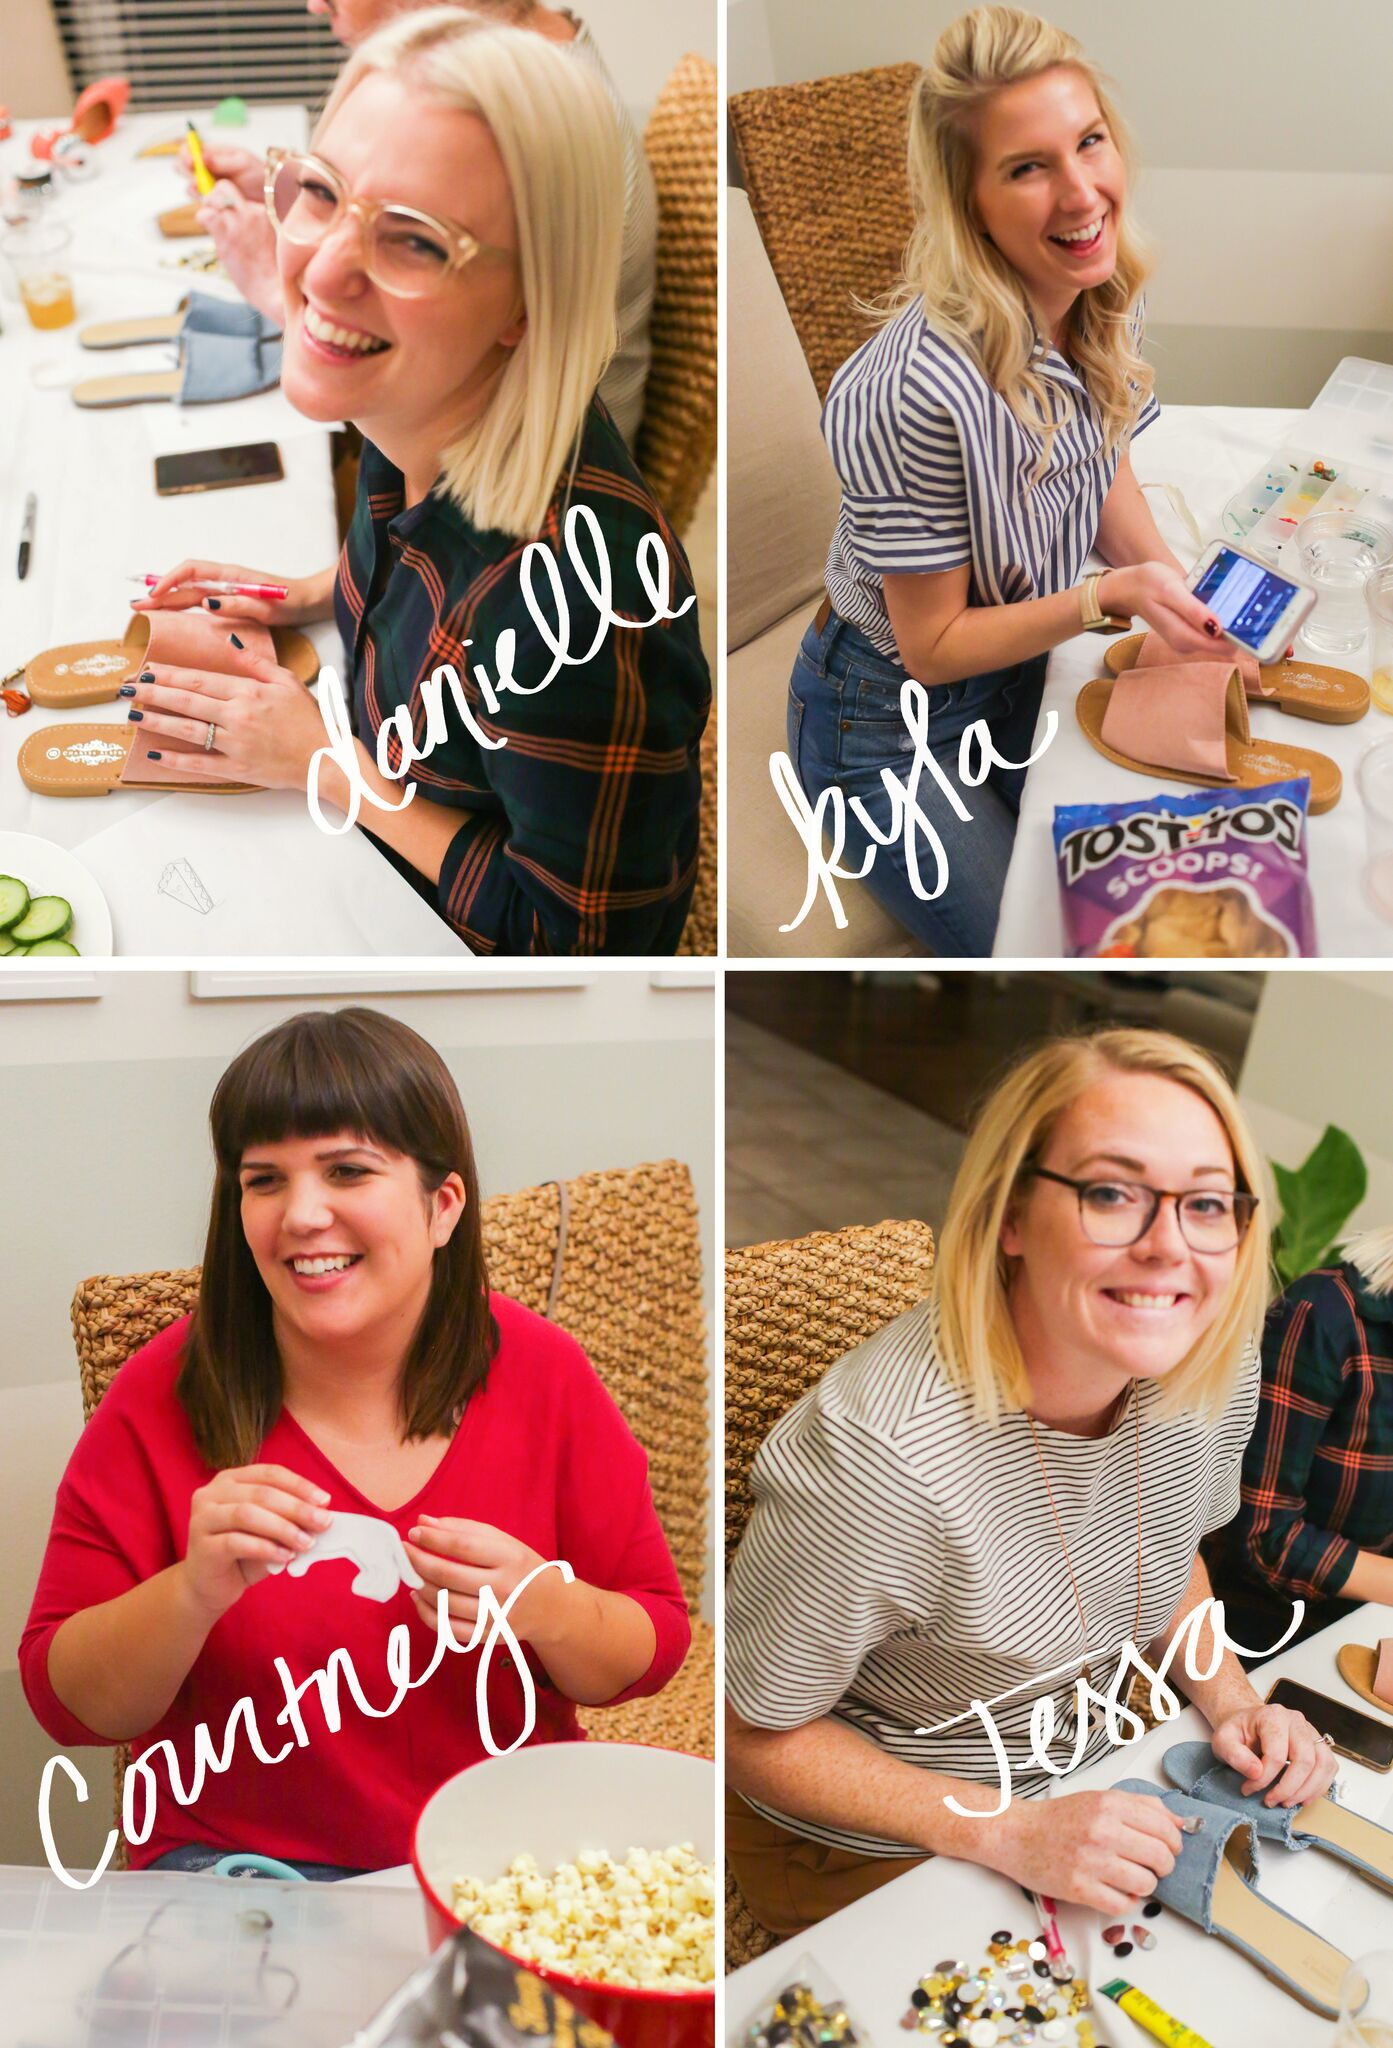 Ashley Brooke - Ideas For a At Home Girl's Craft Night | www.ashleybrookedesgins.com